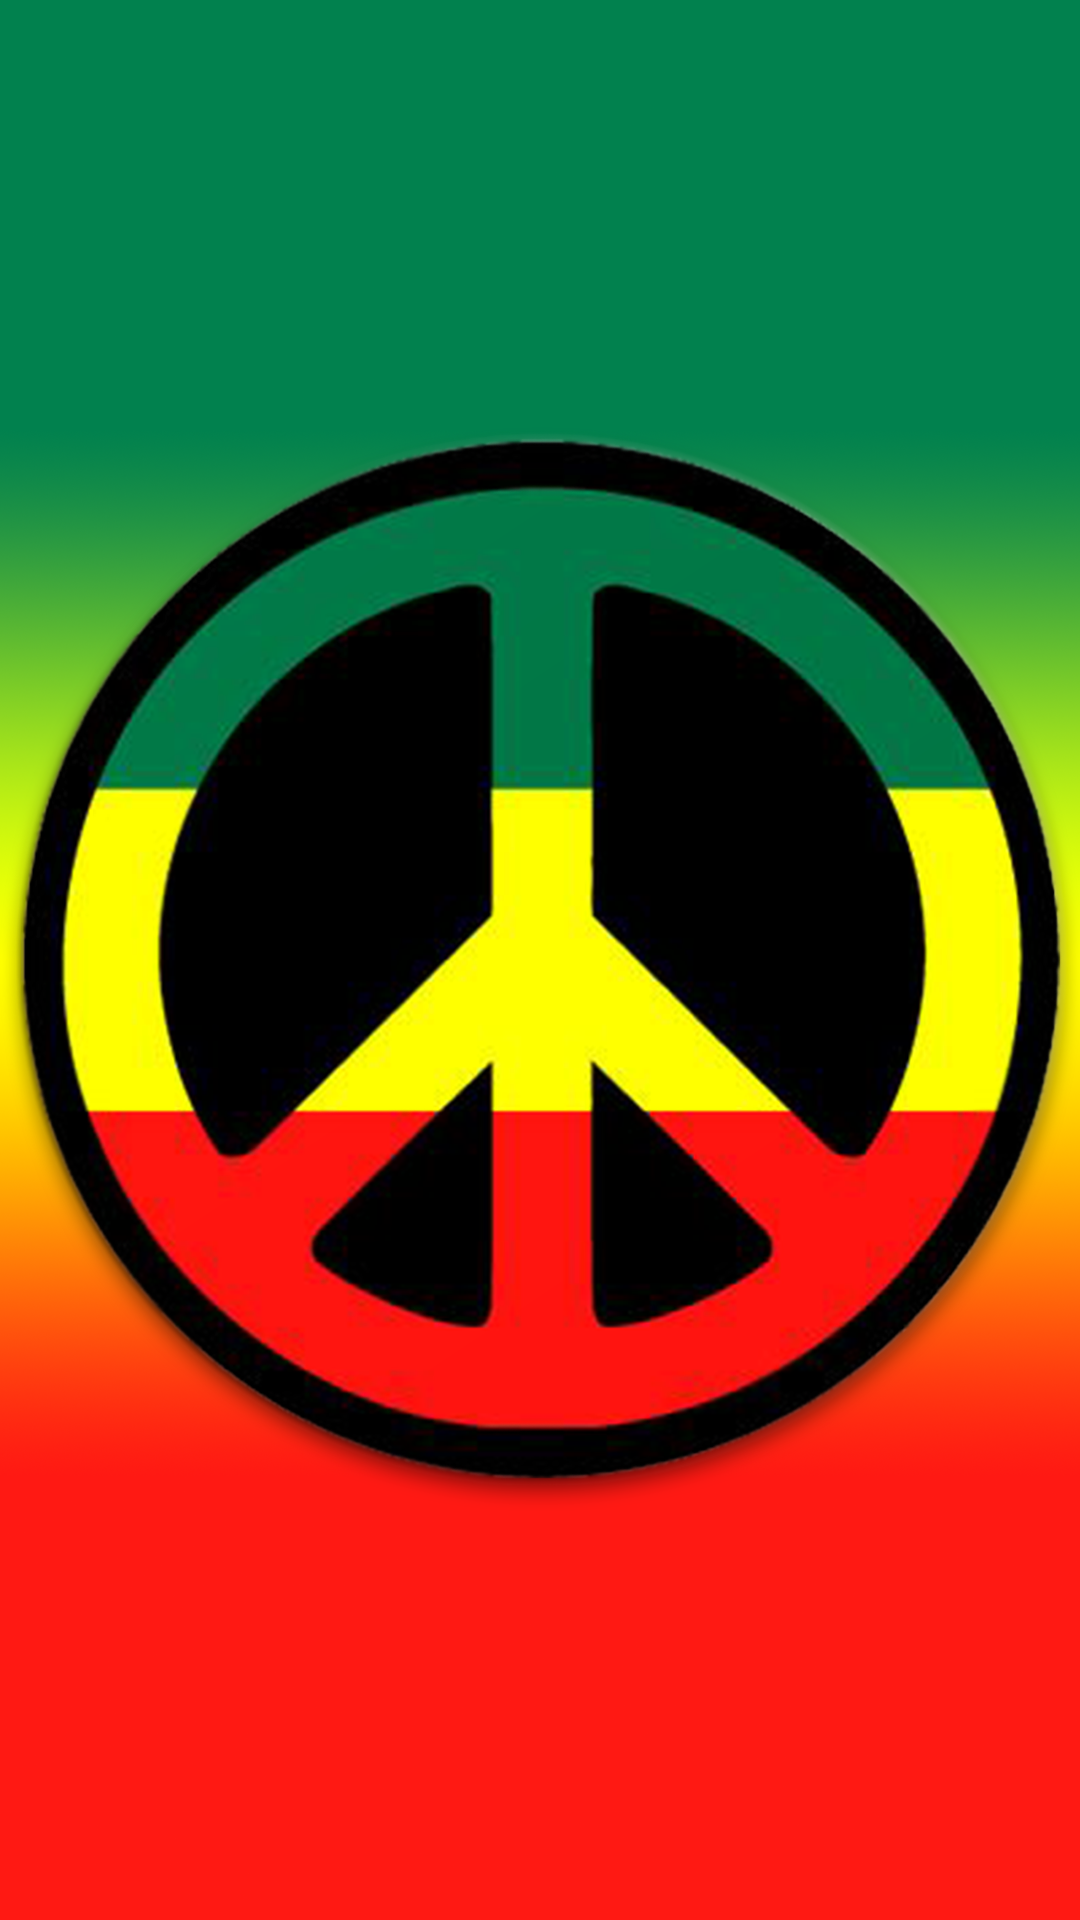 ultra hd love peace wallpaper for your mobile phone 0165